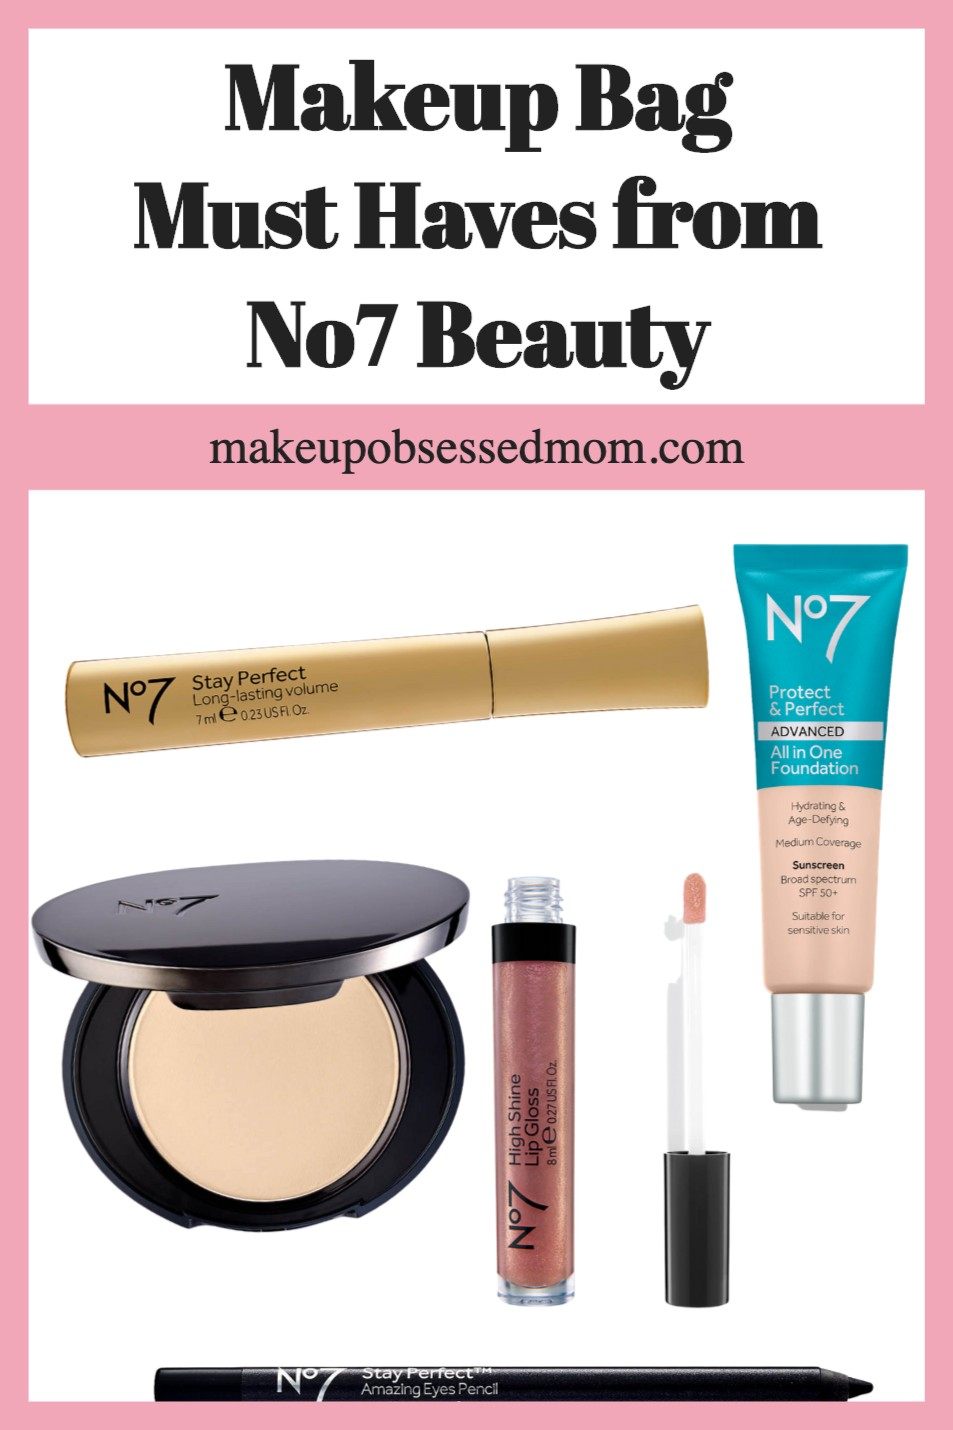 No7 Beauty Makeup Bag Must Haves